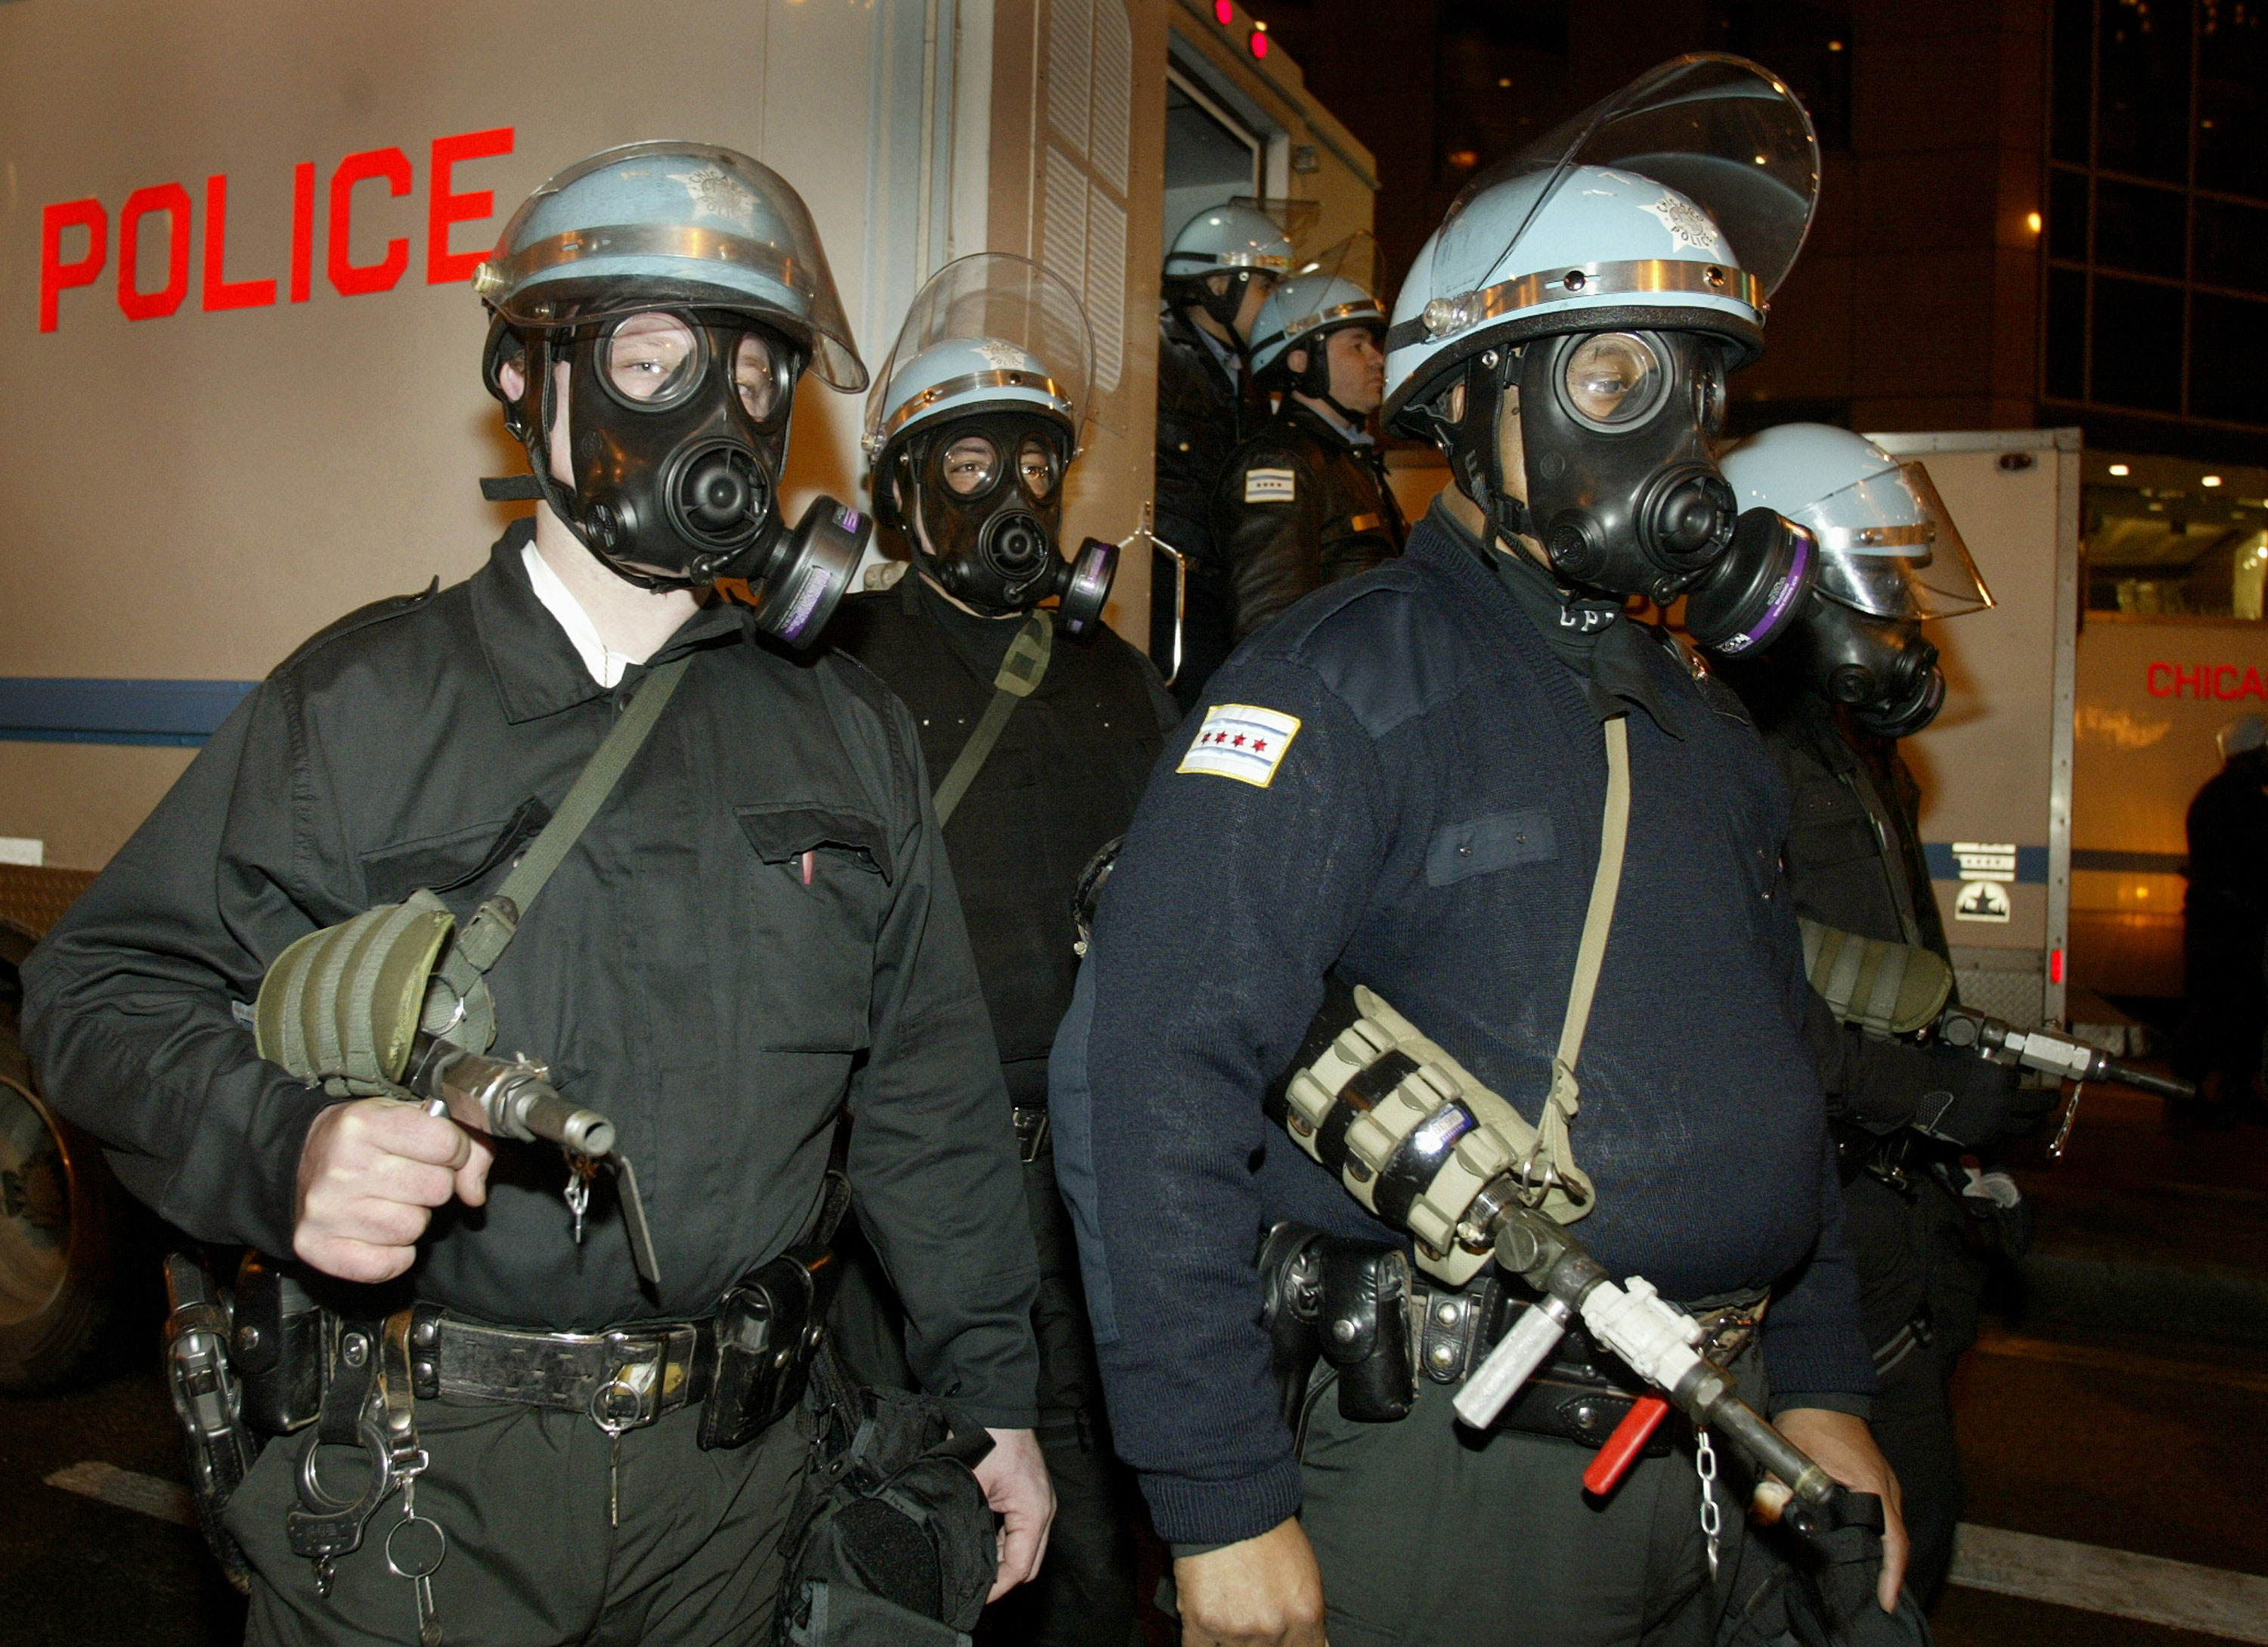 Police in riot gear and armed with pepper spray at an anti-war protest in Chicago, March, 2003.